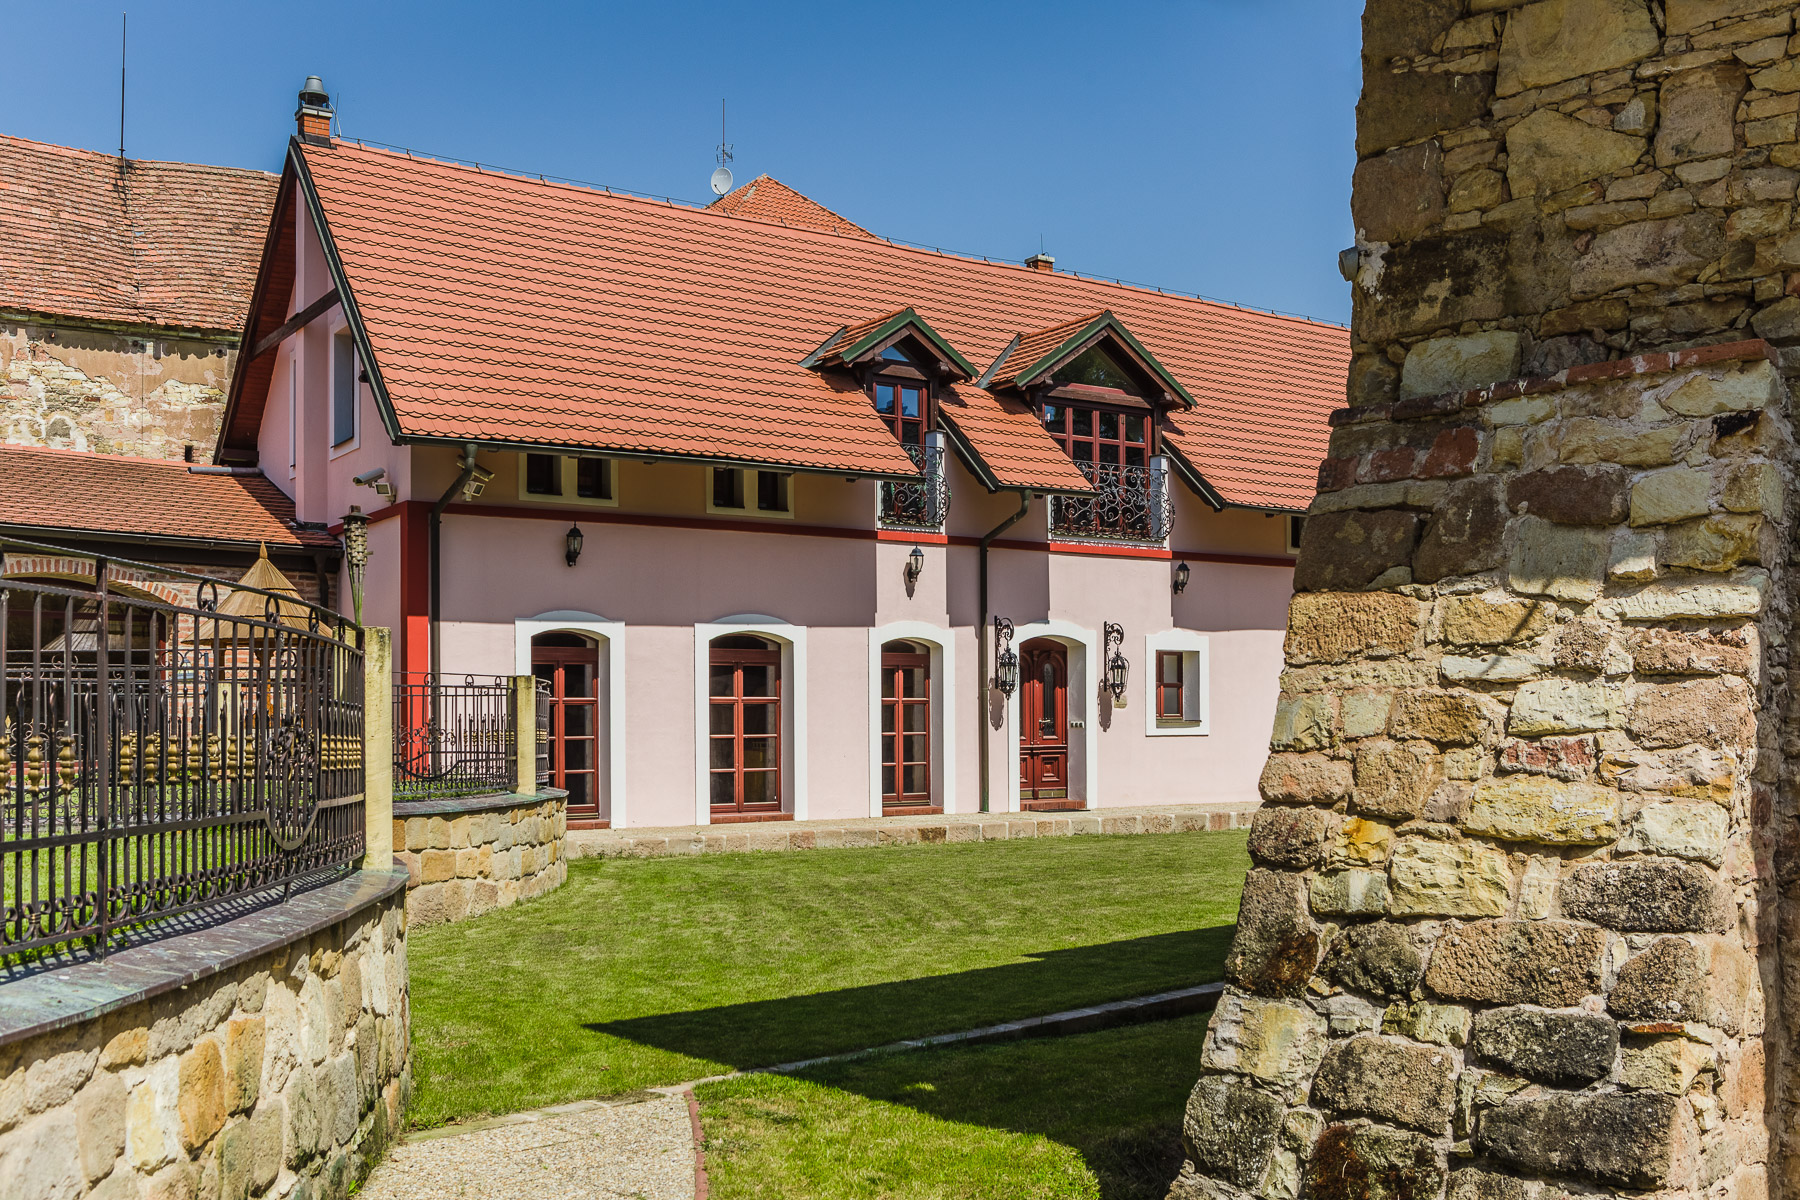 Casa Unifamiliar por un Venta en Country farm with historical charm in Central Bohemia Neprobylice Other Central Bohemia, Central Bohemia 27375 República Checa